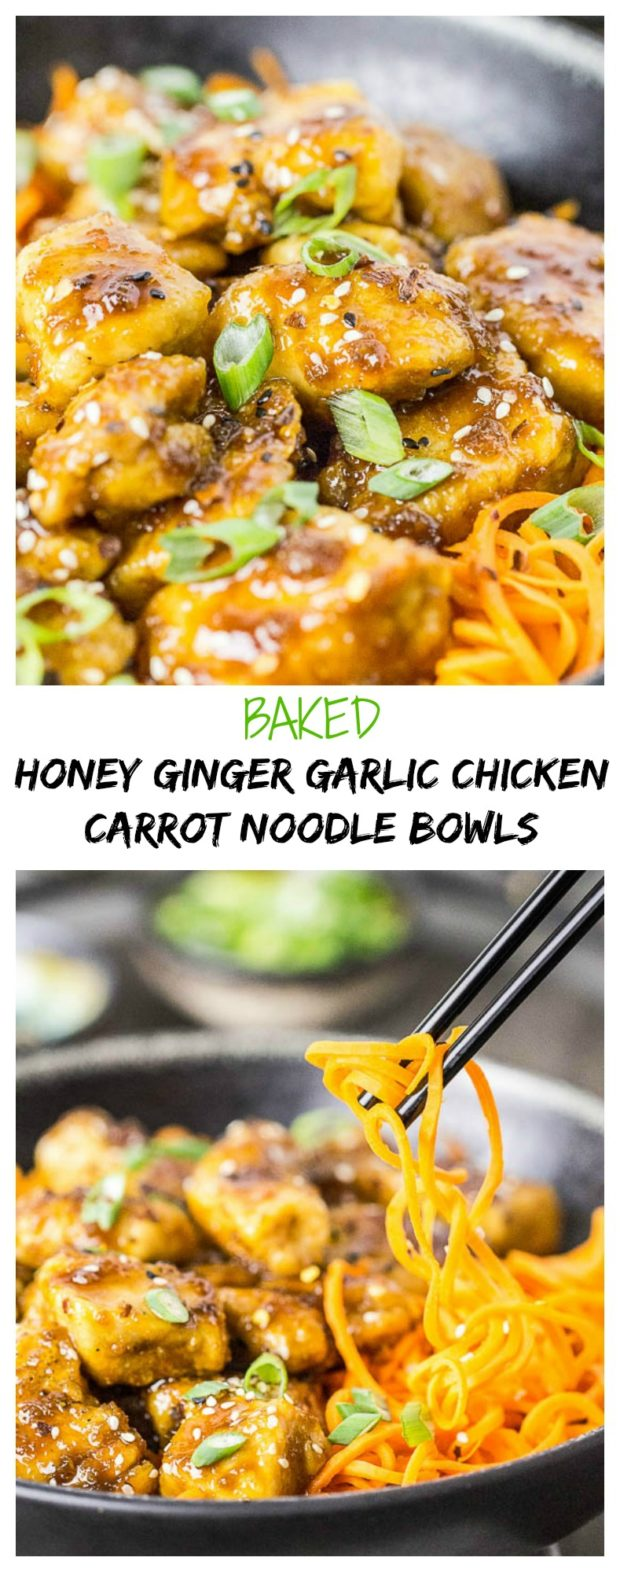 Honey Garlic Ginger Chicken Carrot Noodle Bowls-long pin